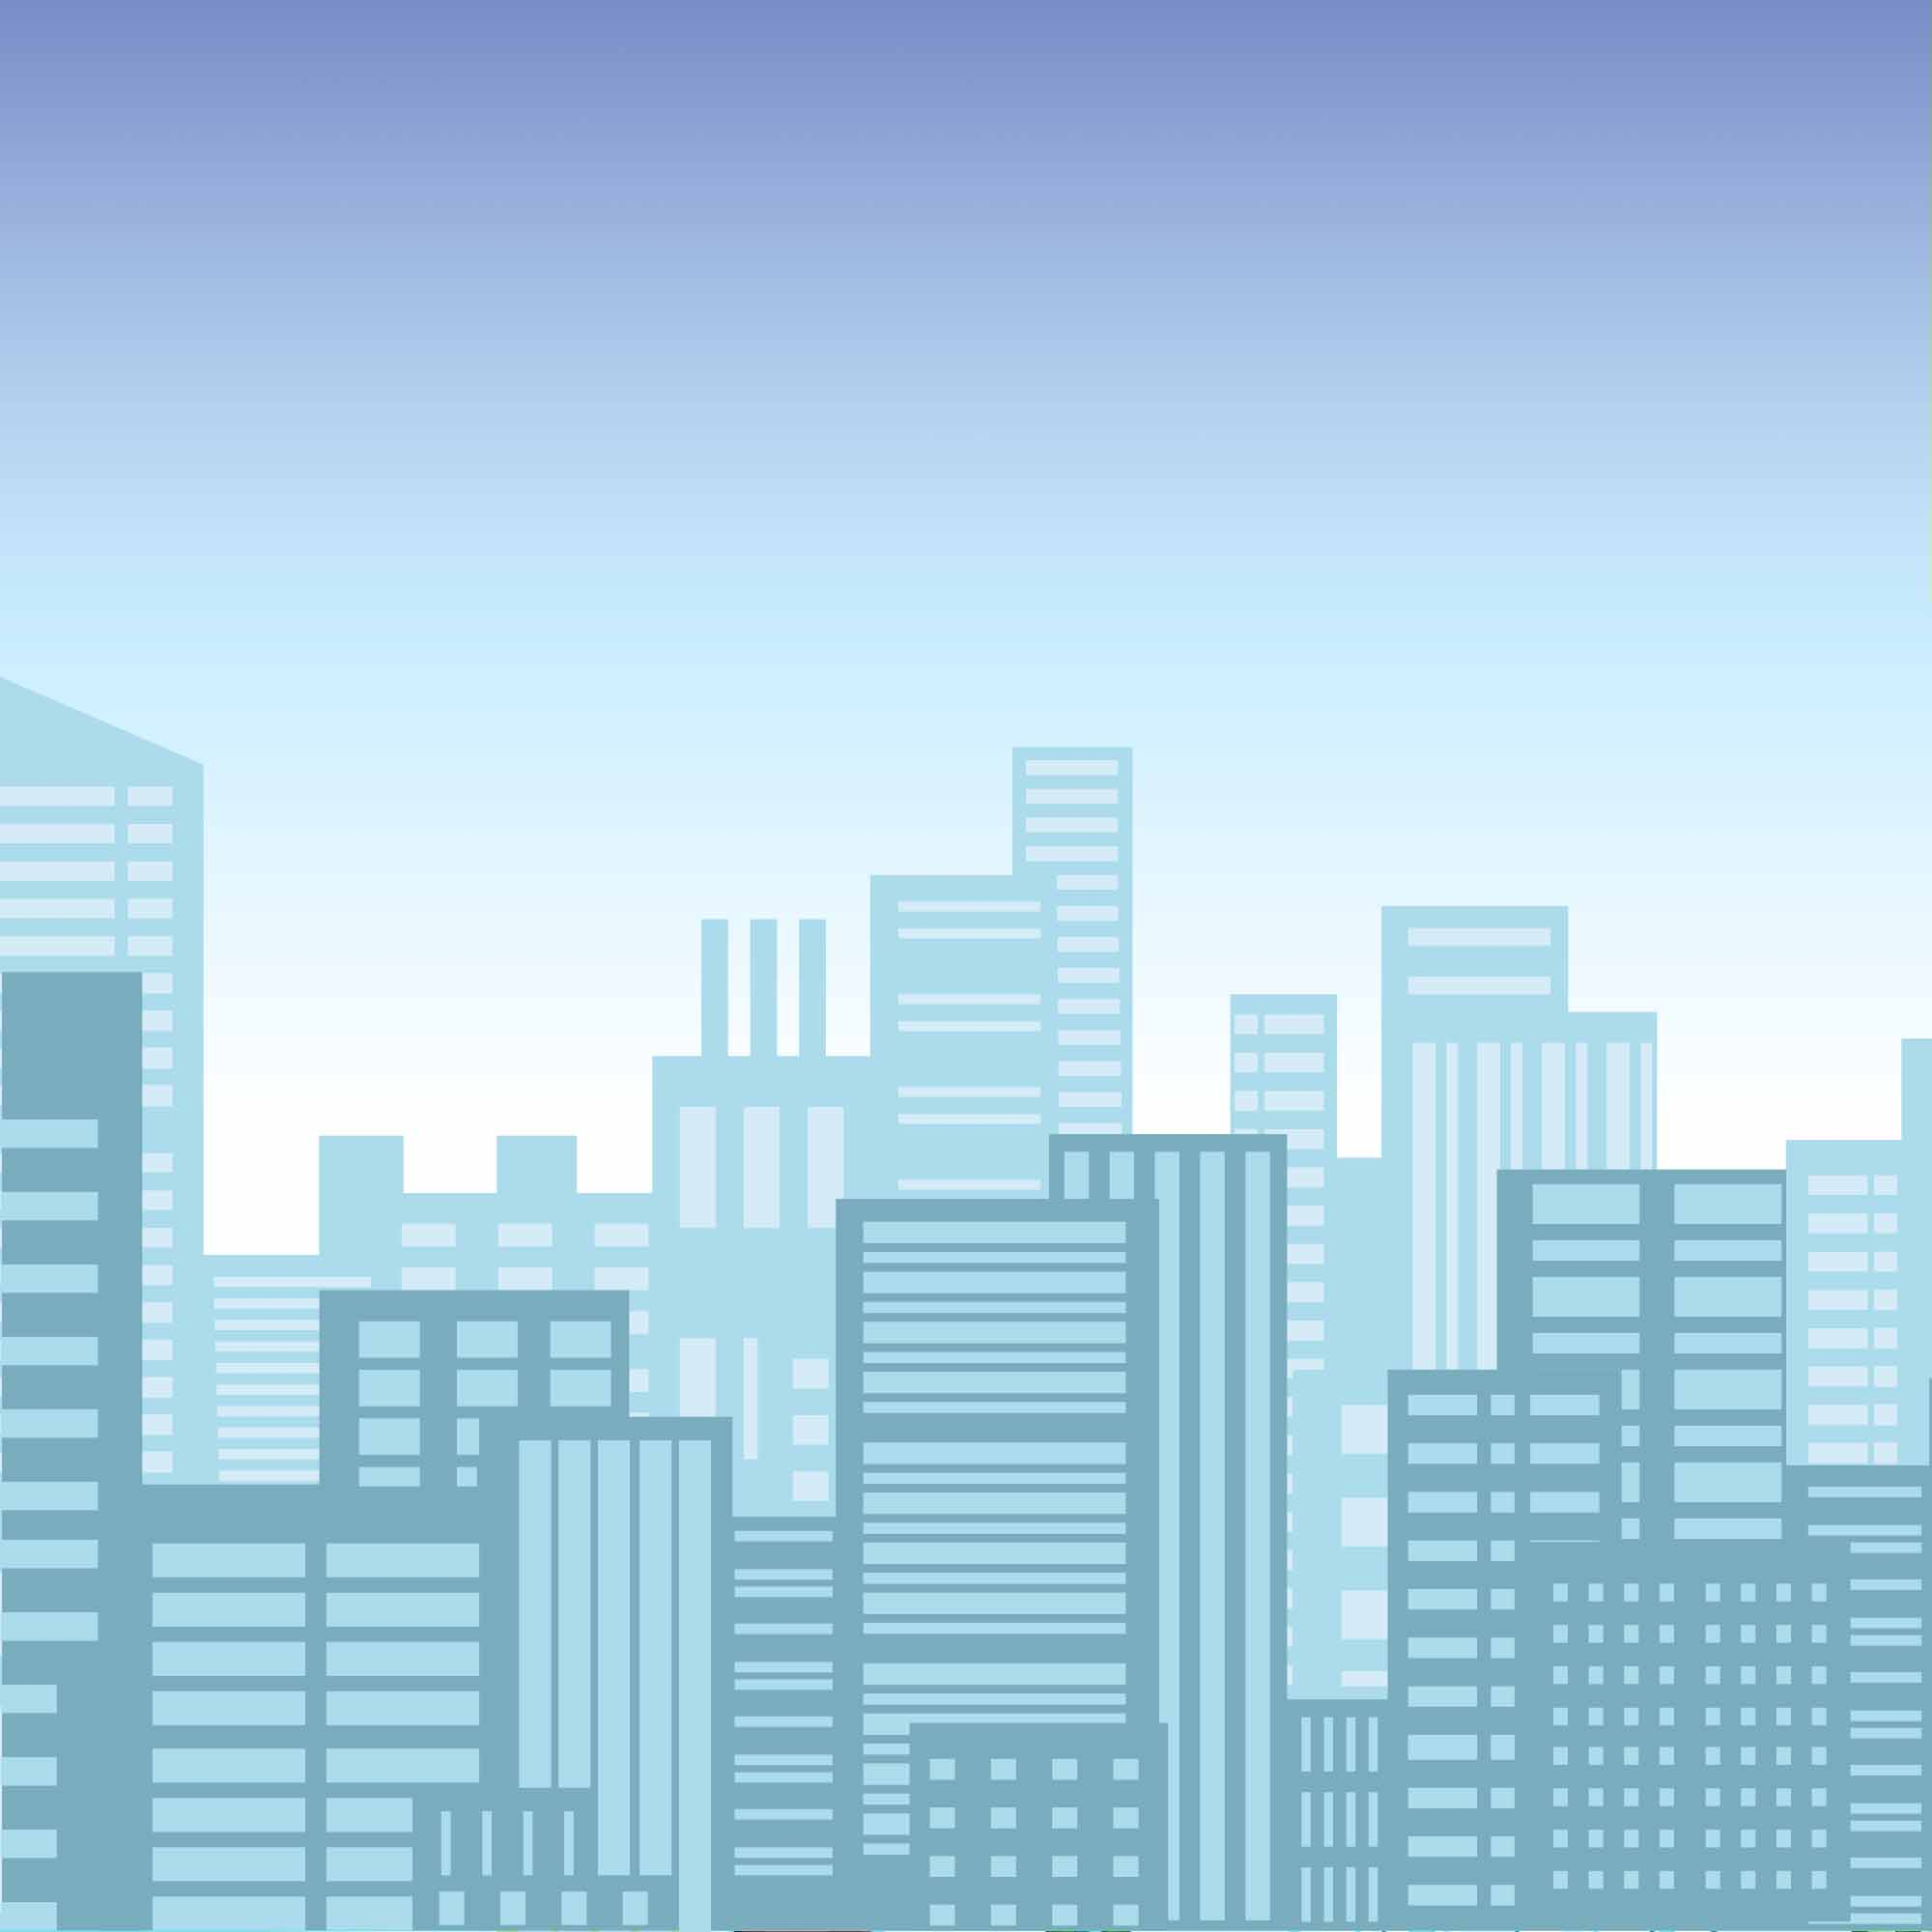 Background 1 - Blue City Background